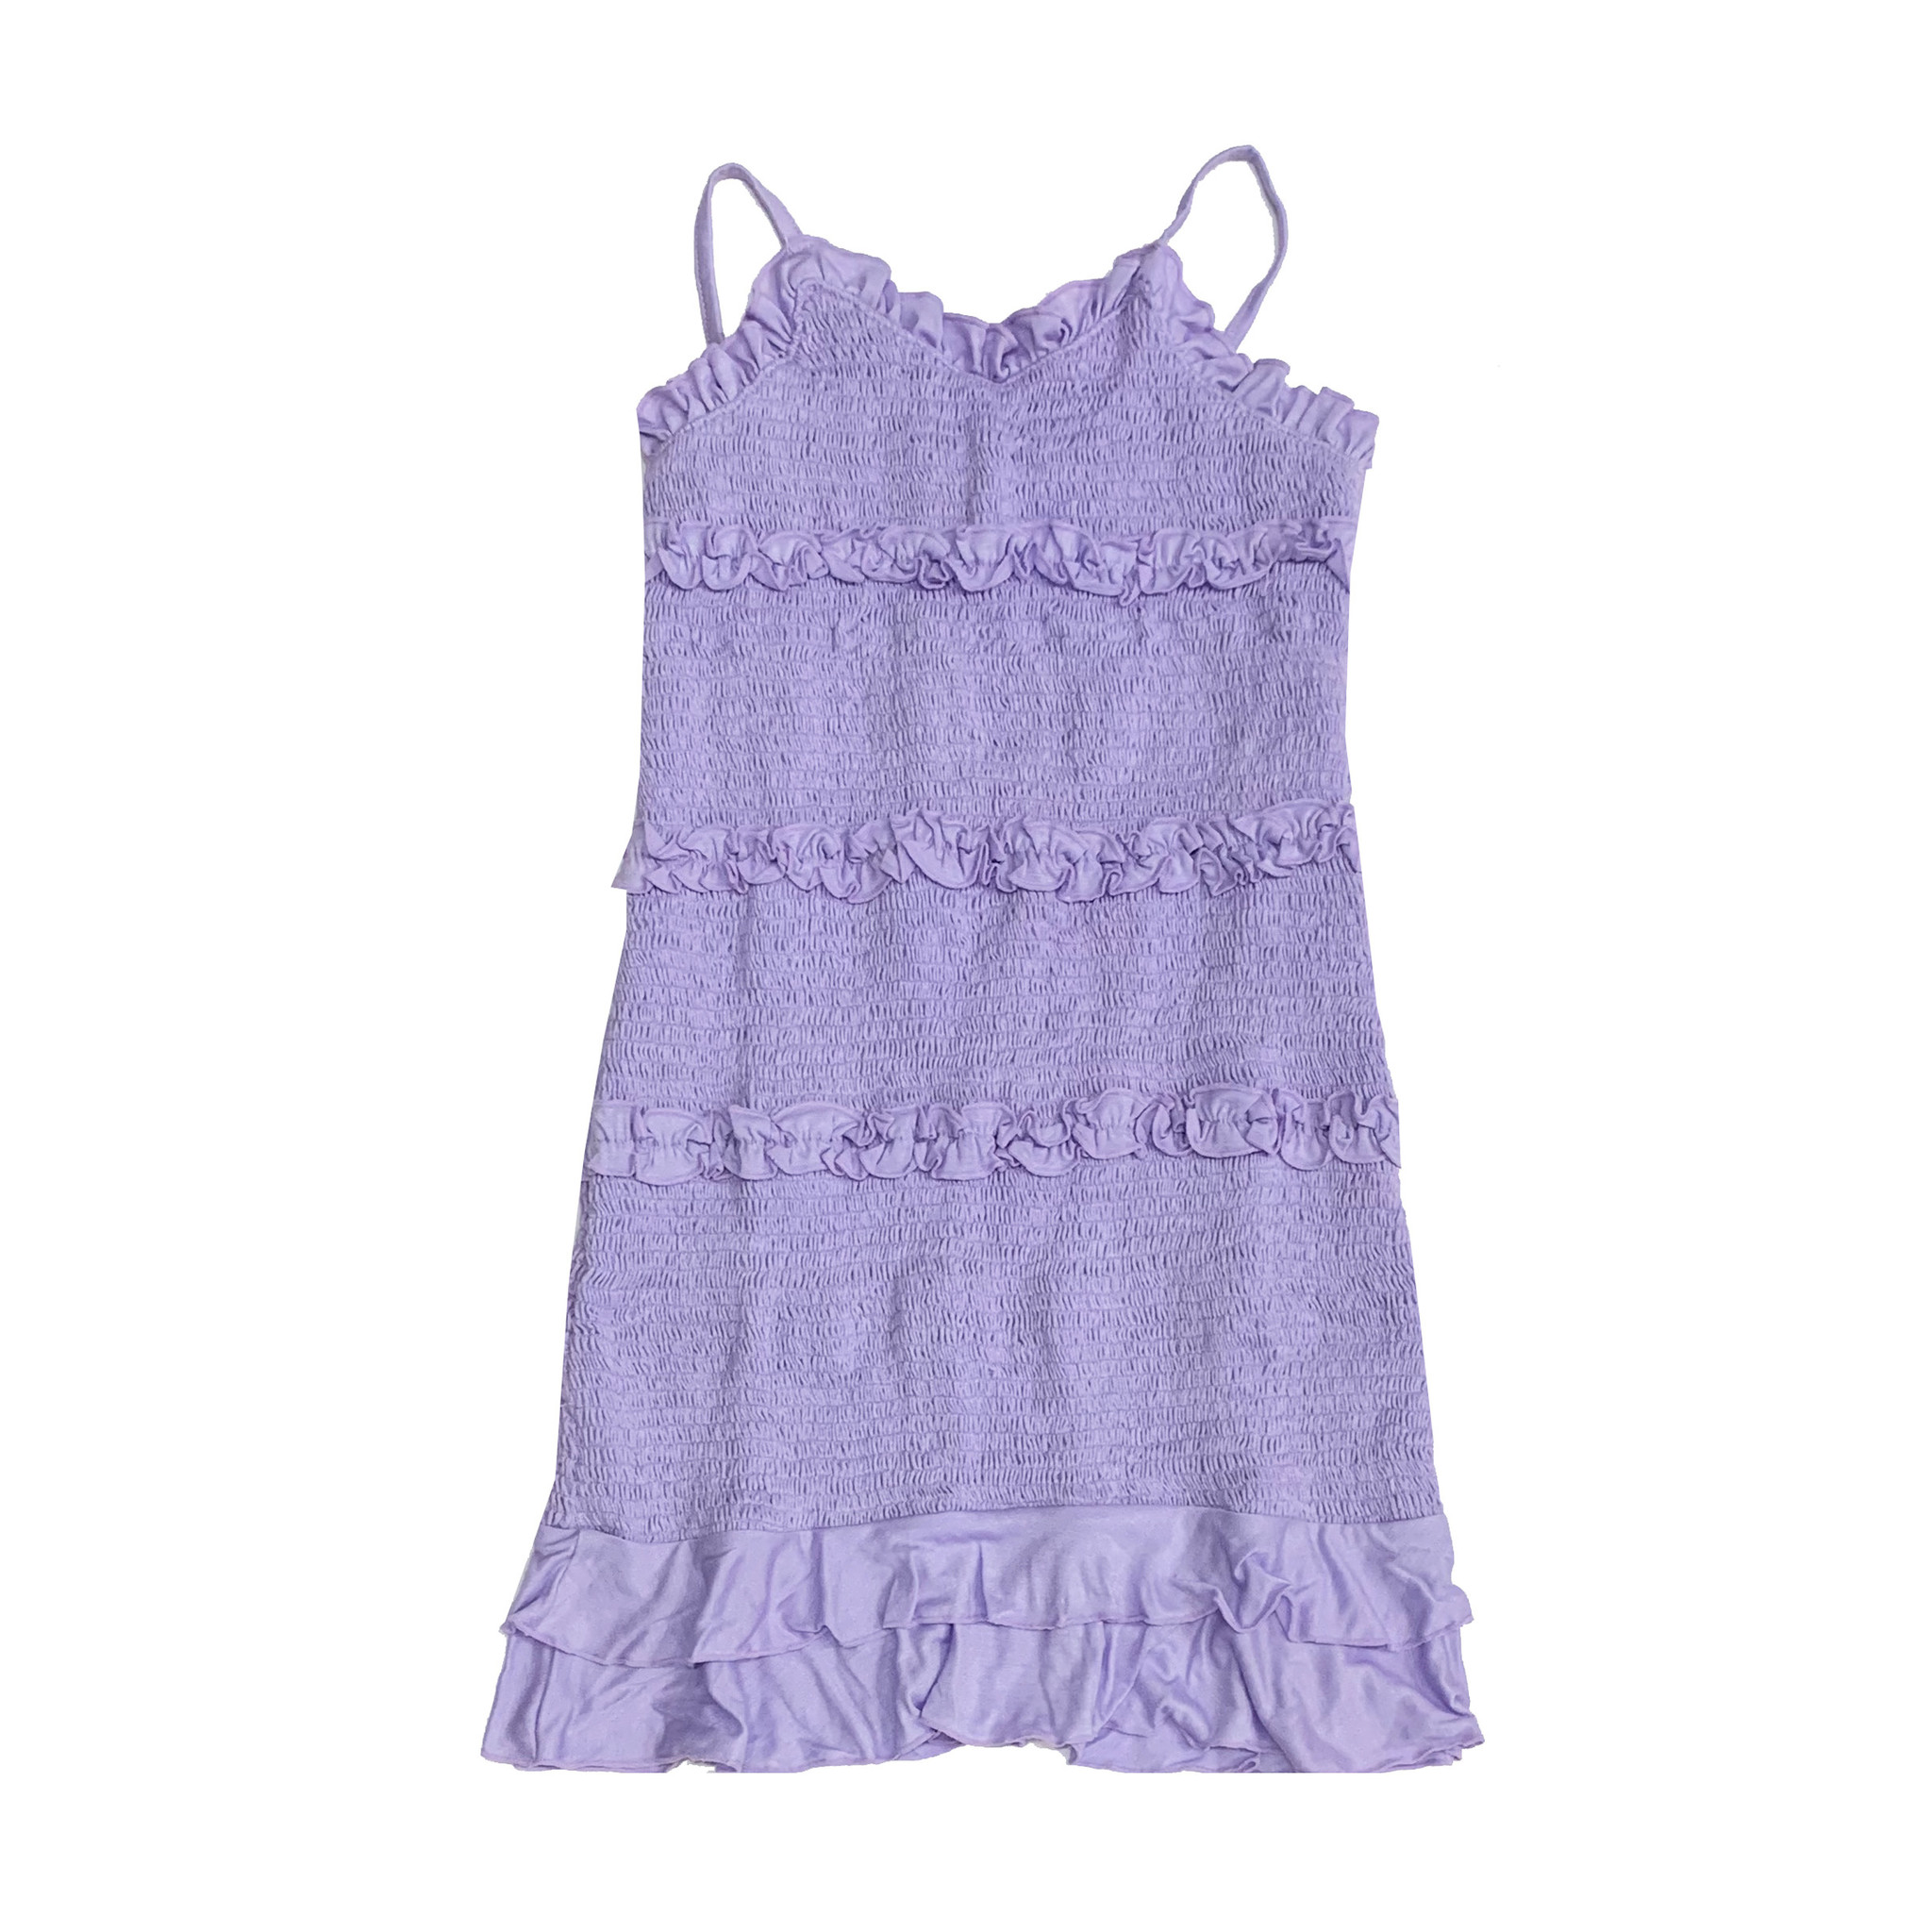 Flowers by Zoe Lavender Ruched Ruffle Dress